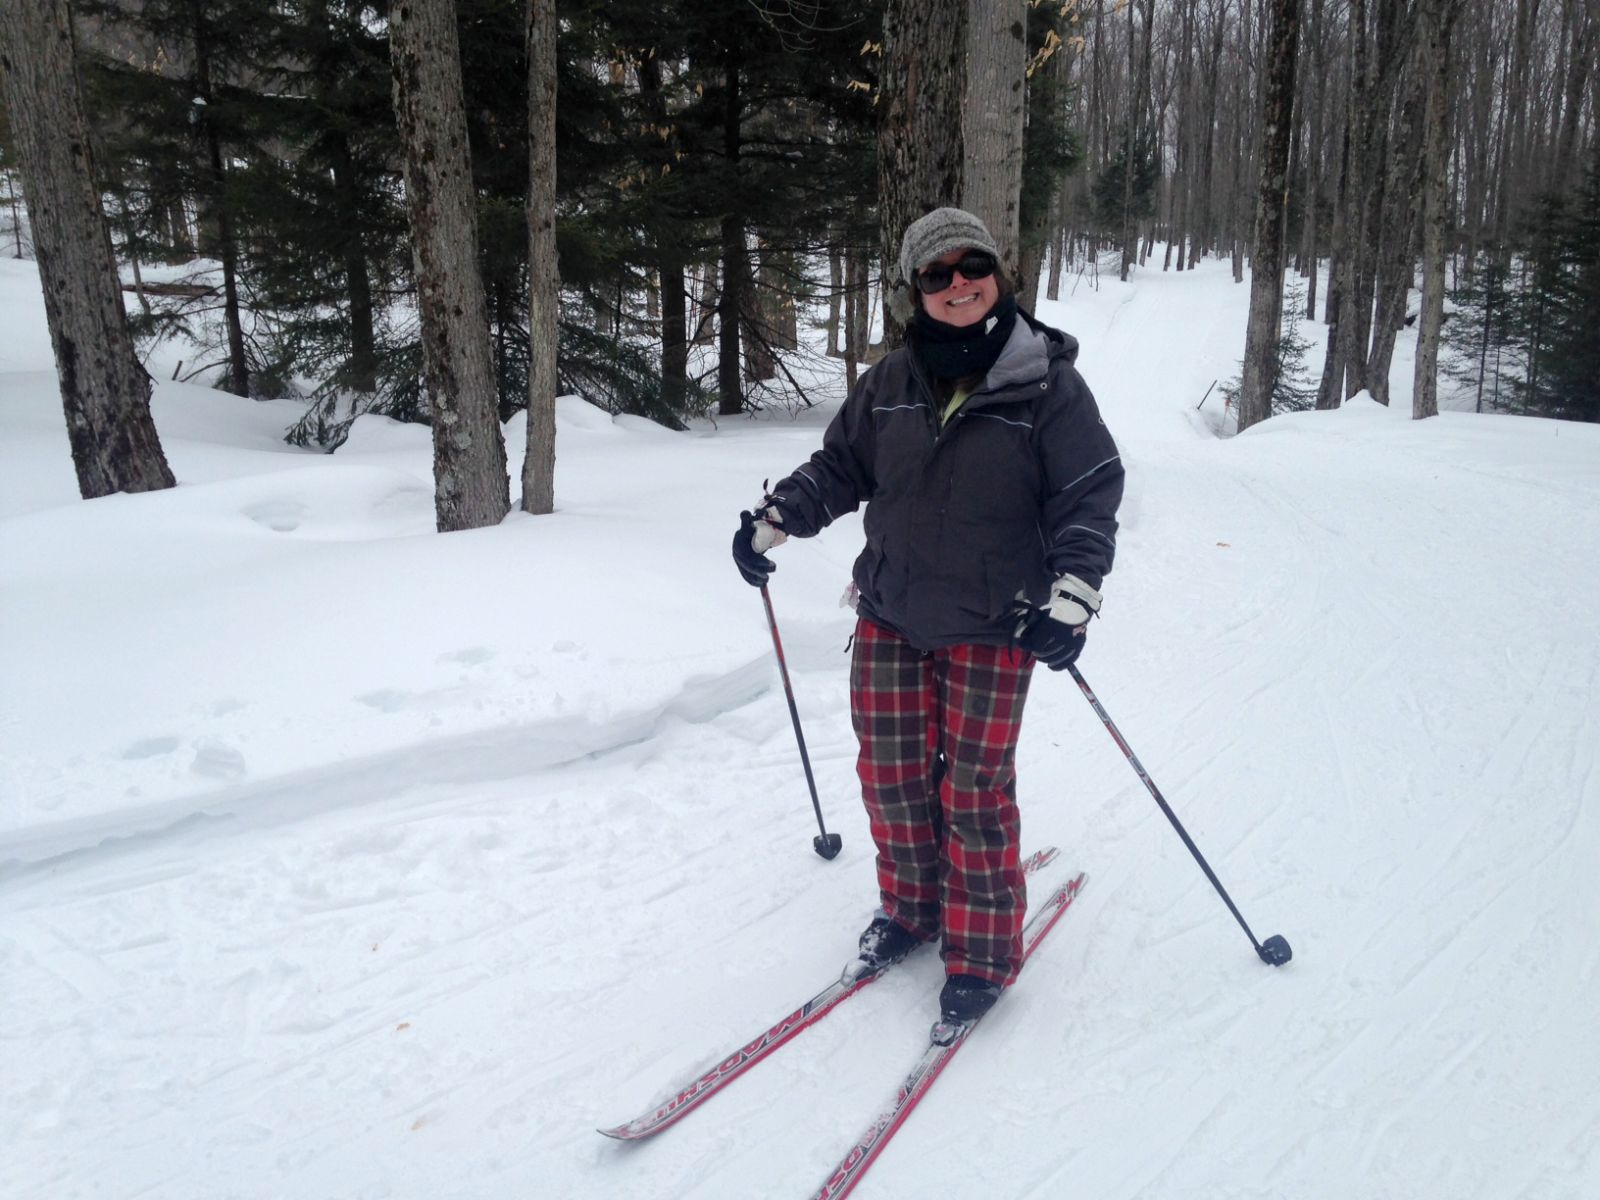 Skiing at the Tupper Lake Groomed Cross Country Ski Center.